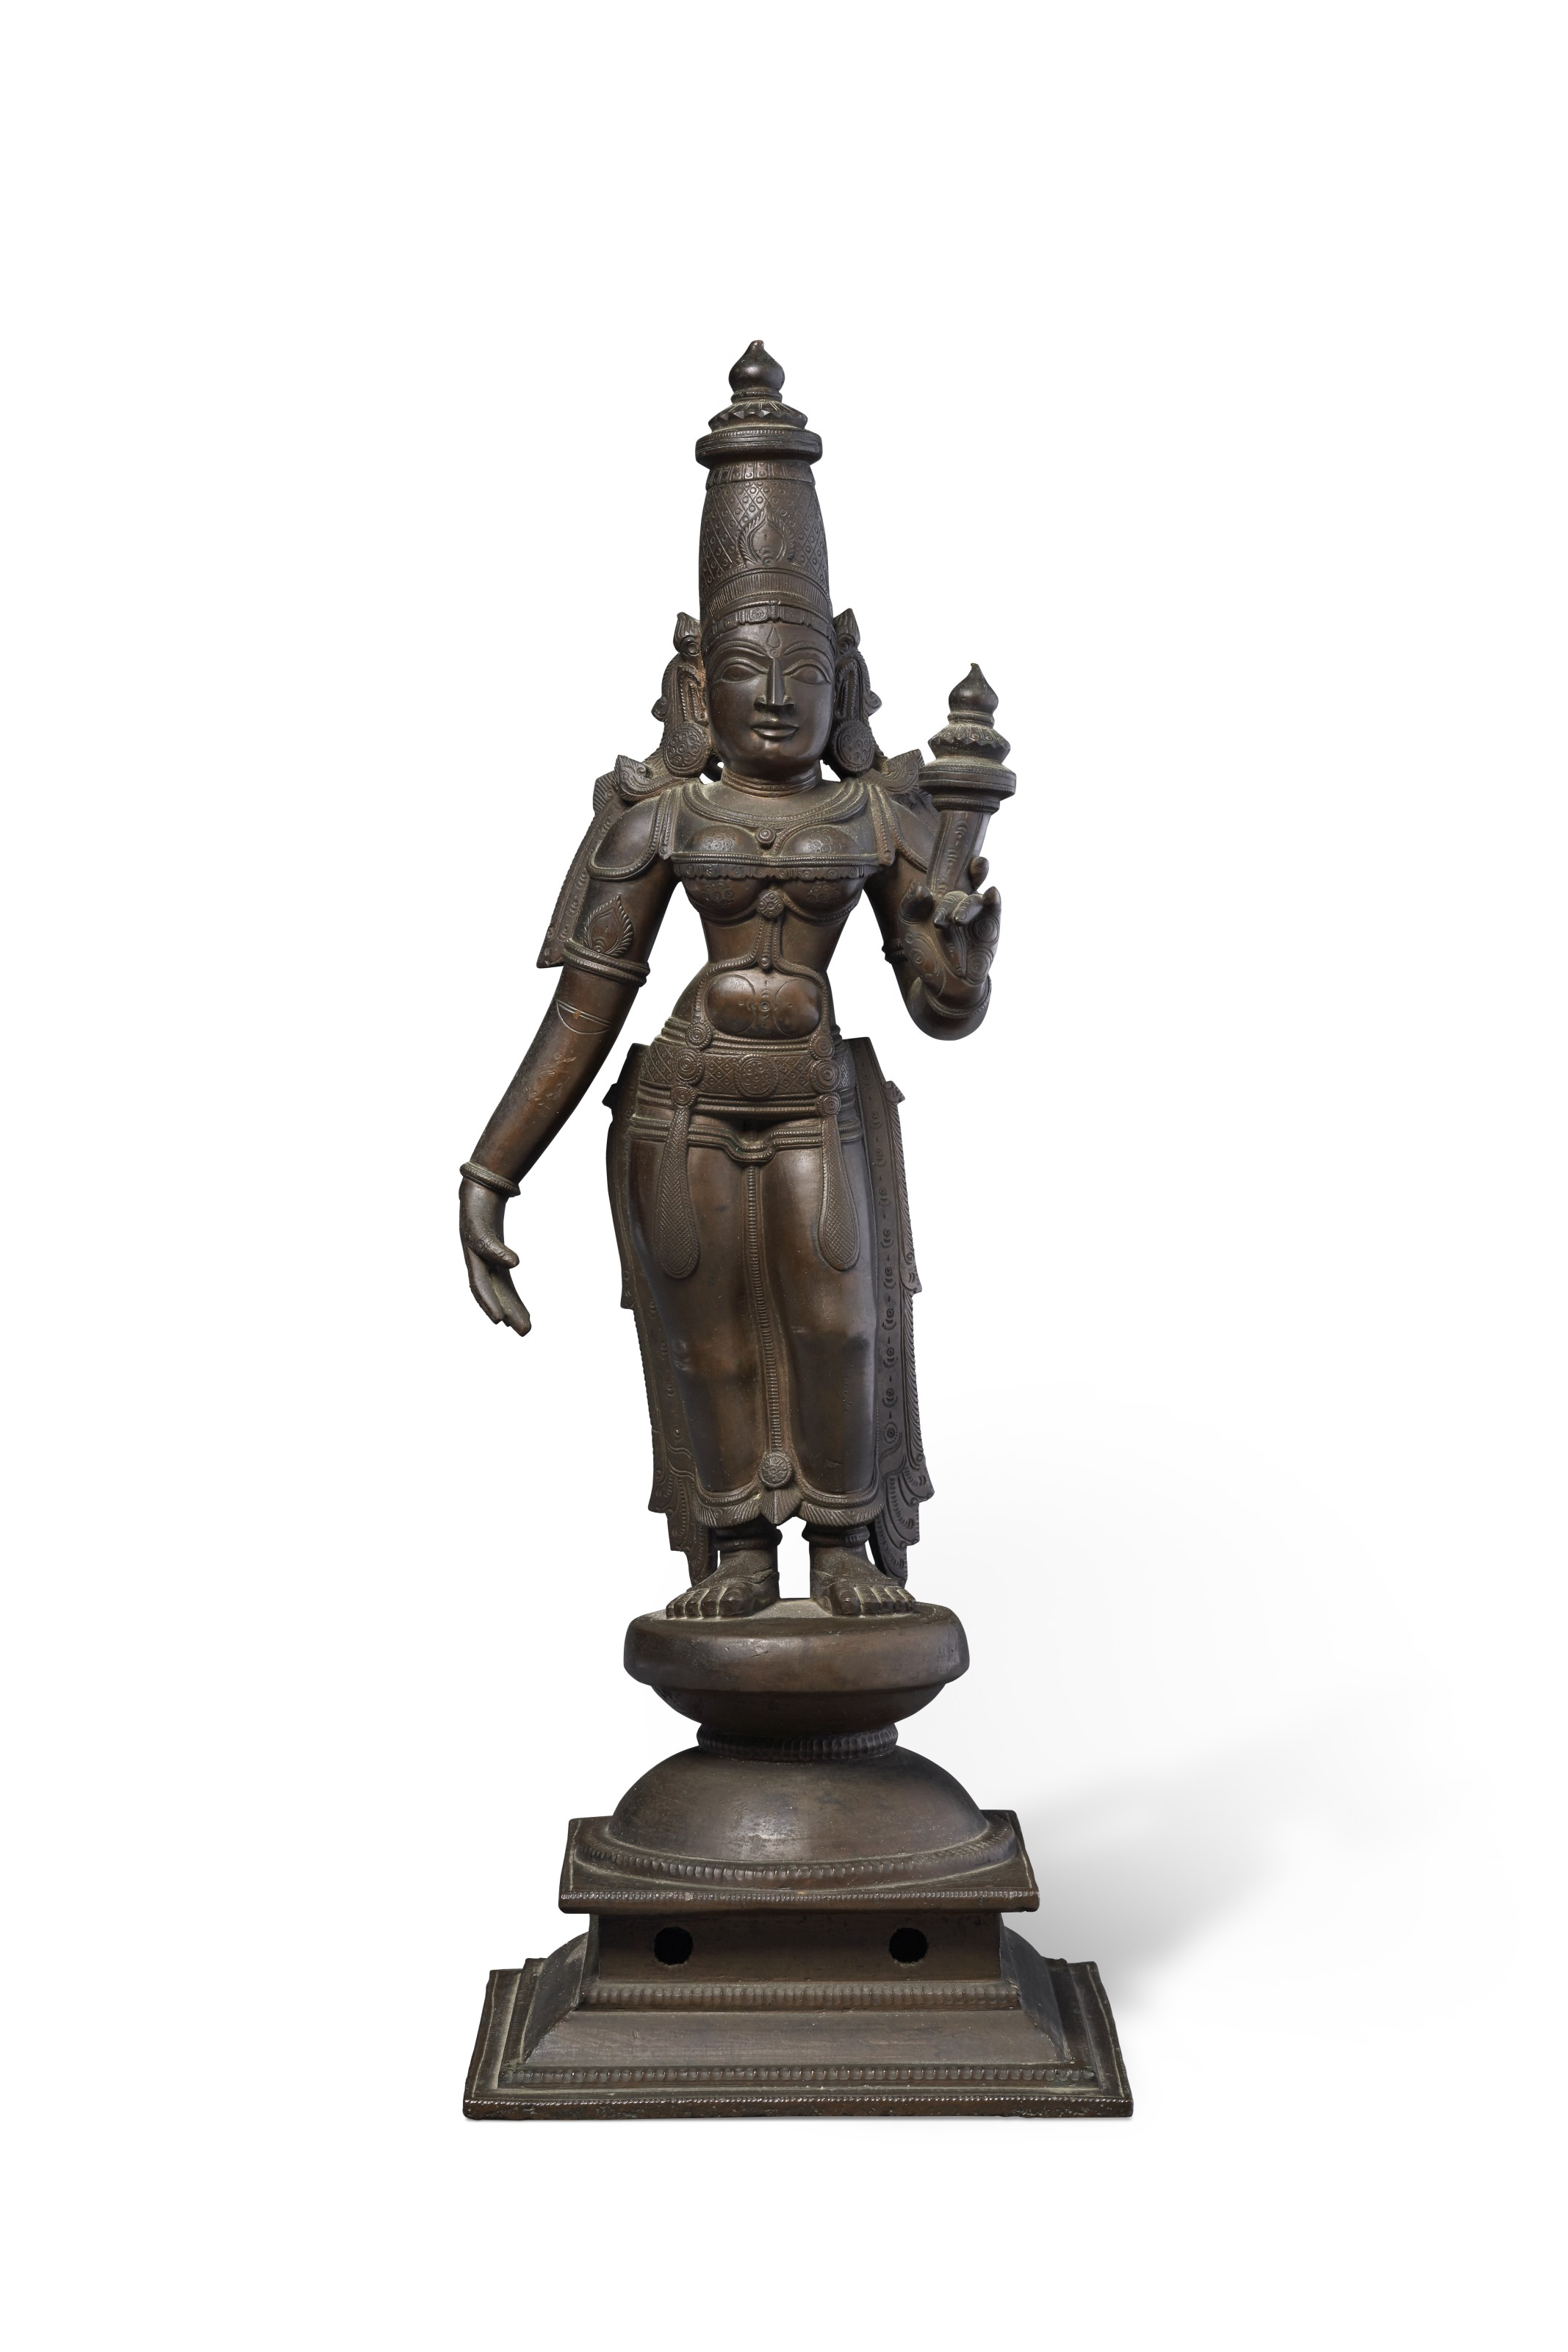 A BRONZE FIGURE OF BHU DEVI